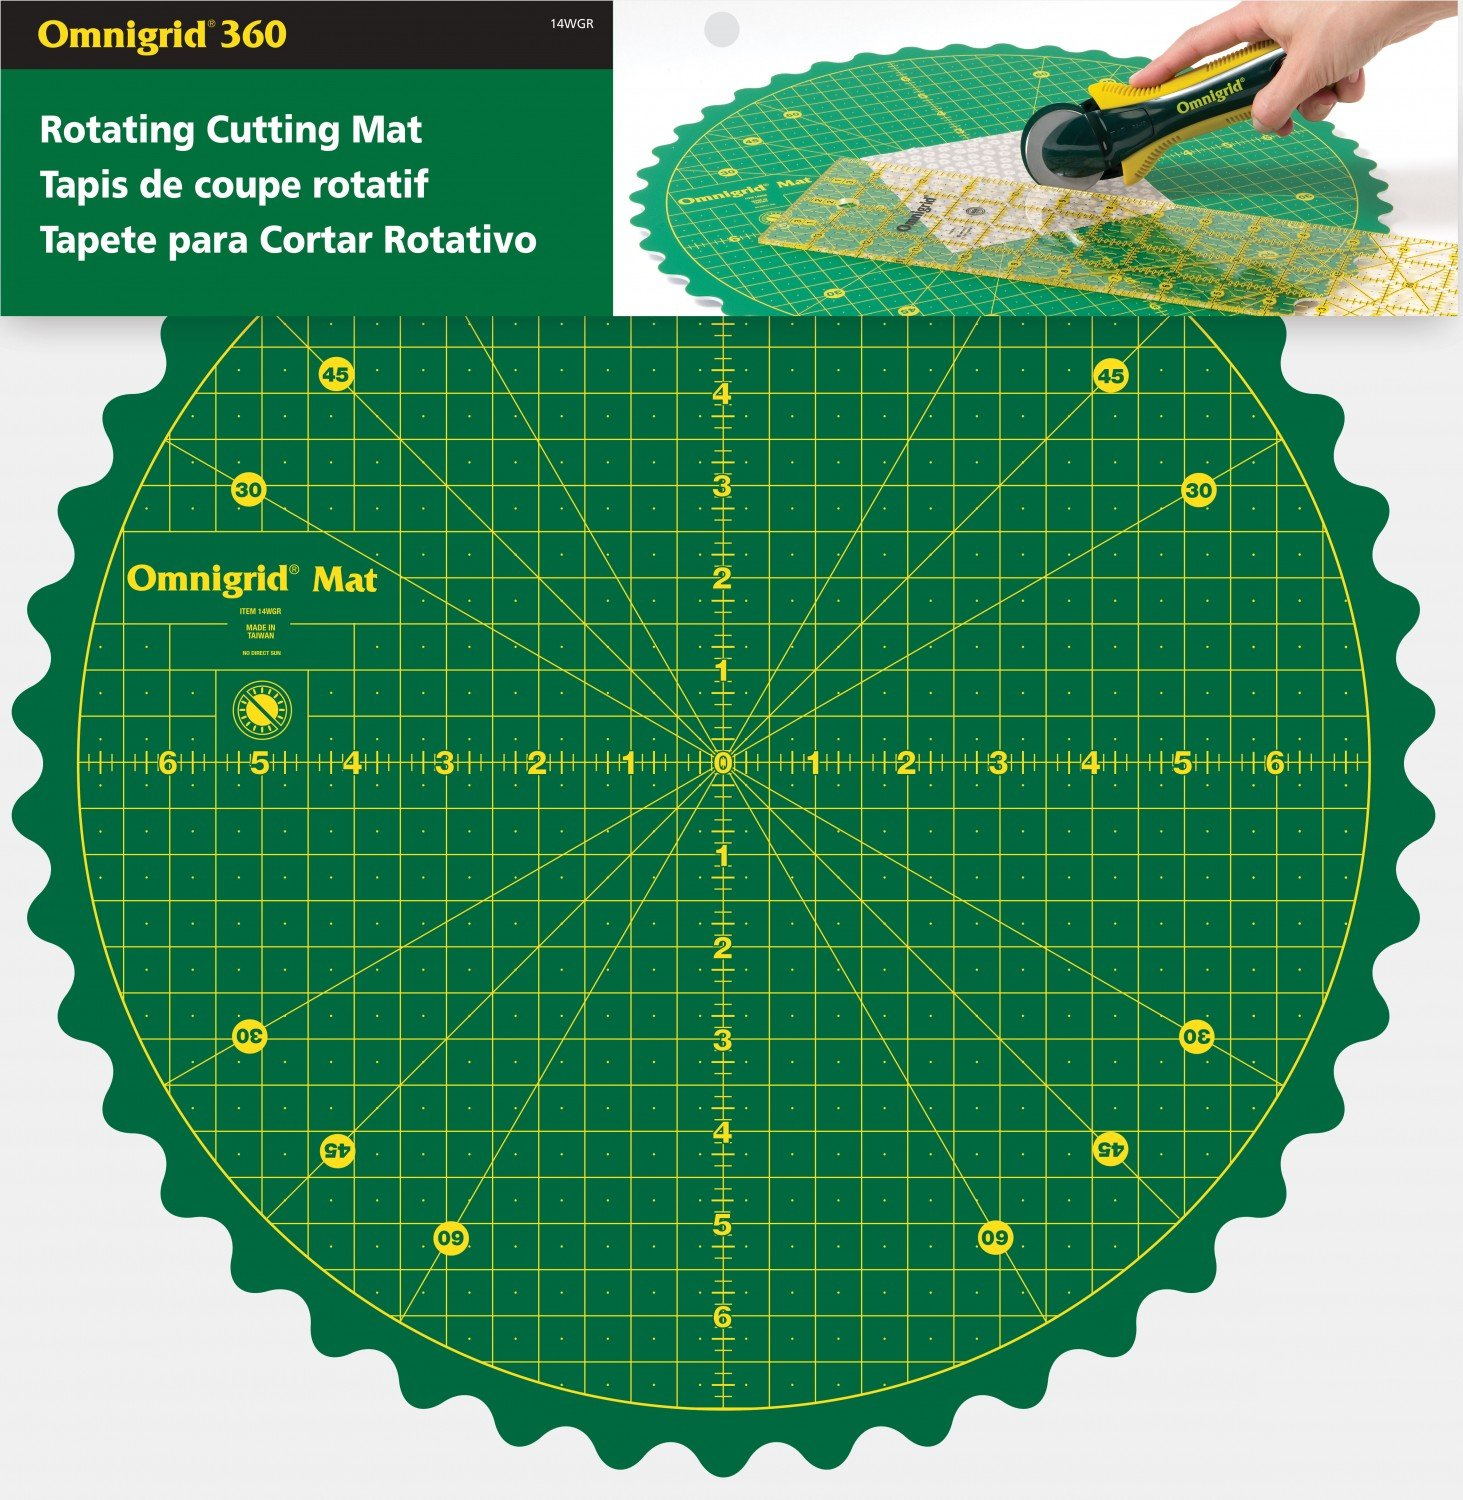 14 Rotating Cutting Mat Omnigrid